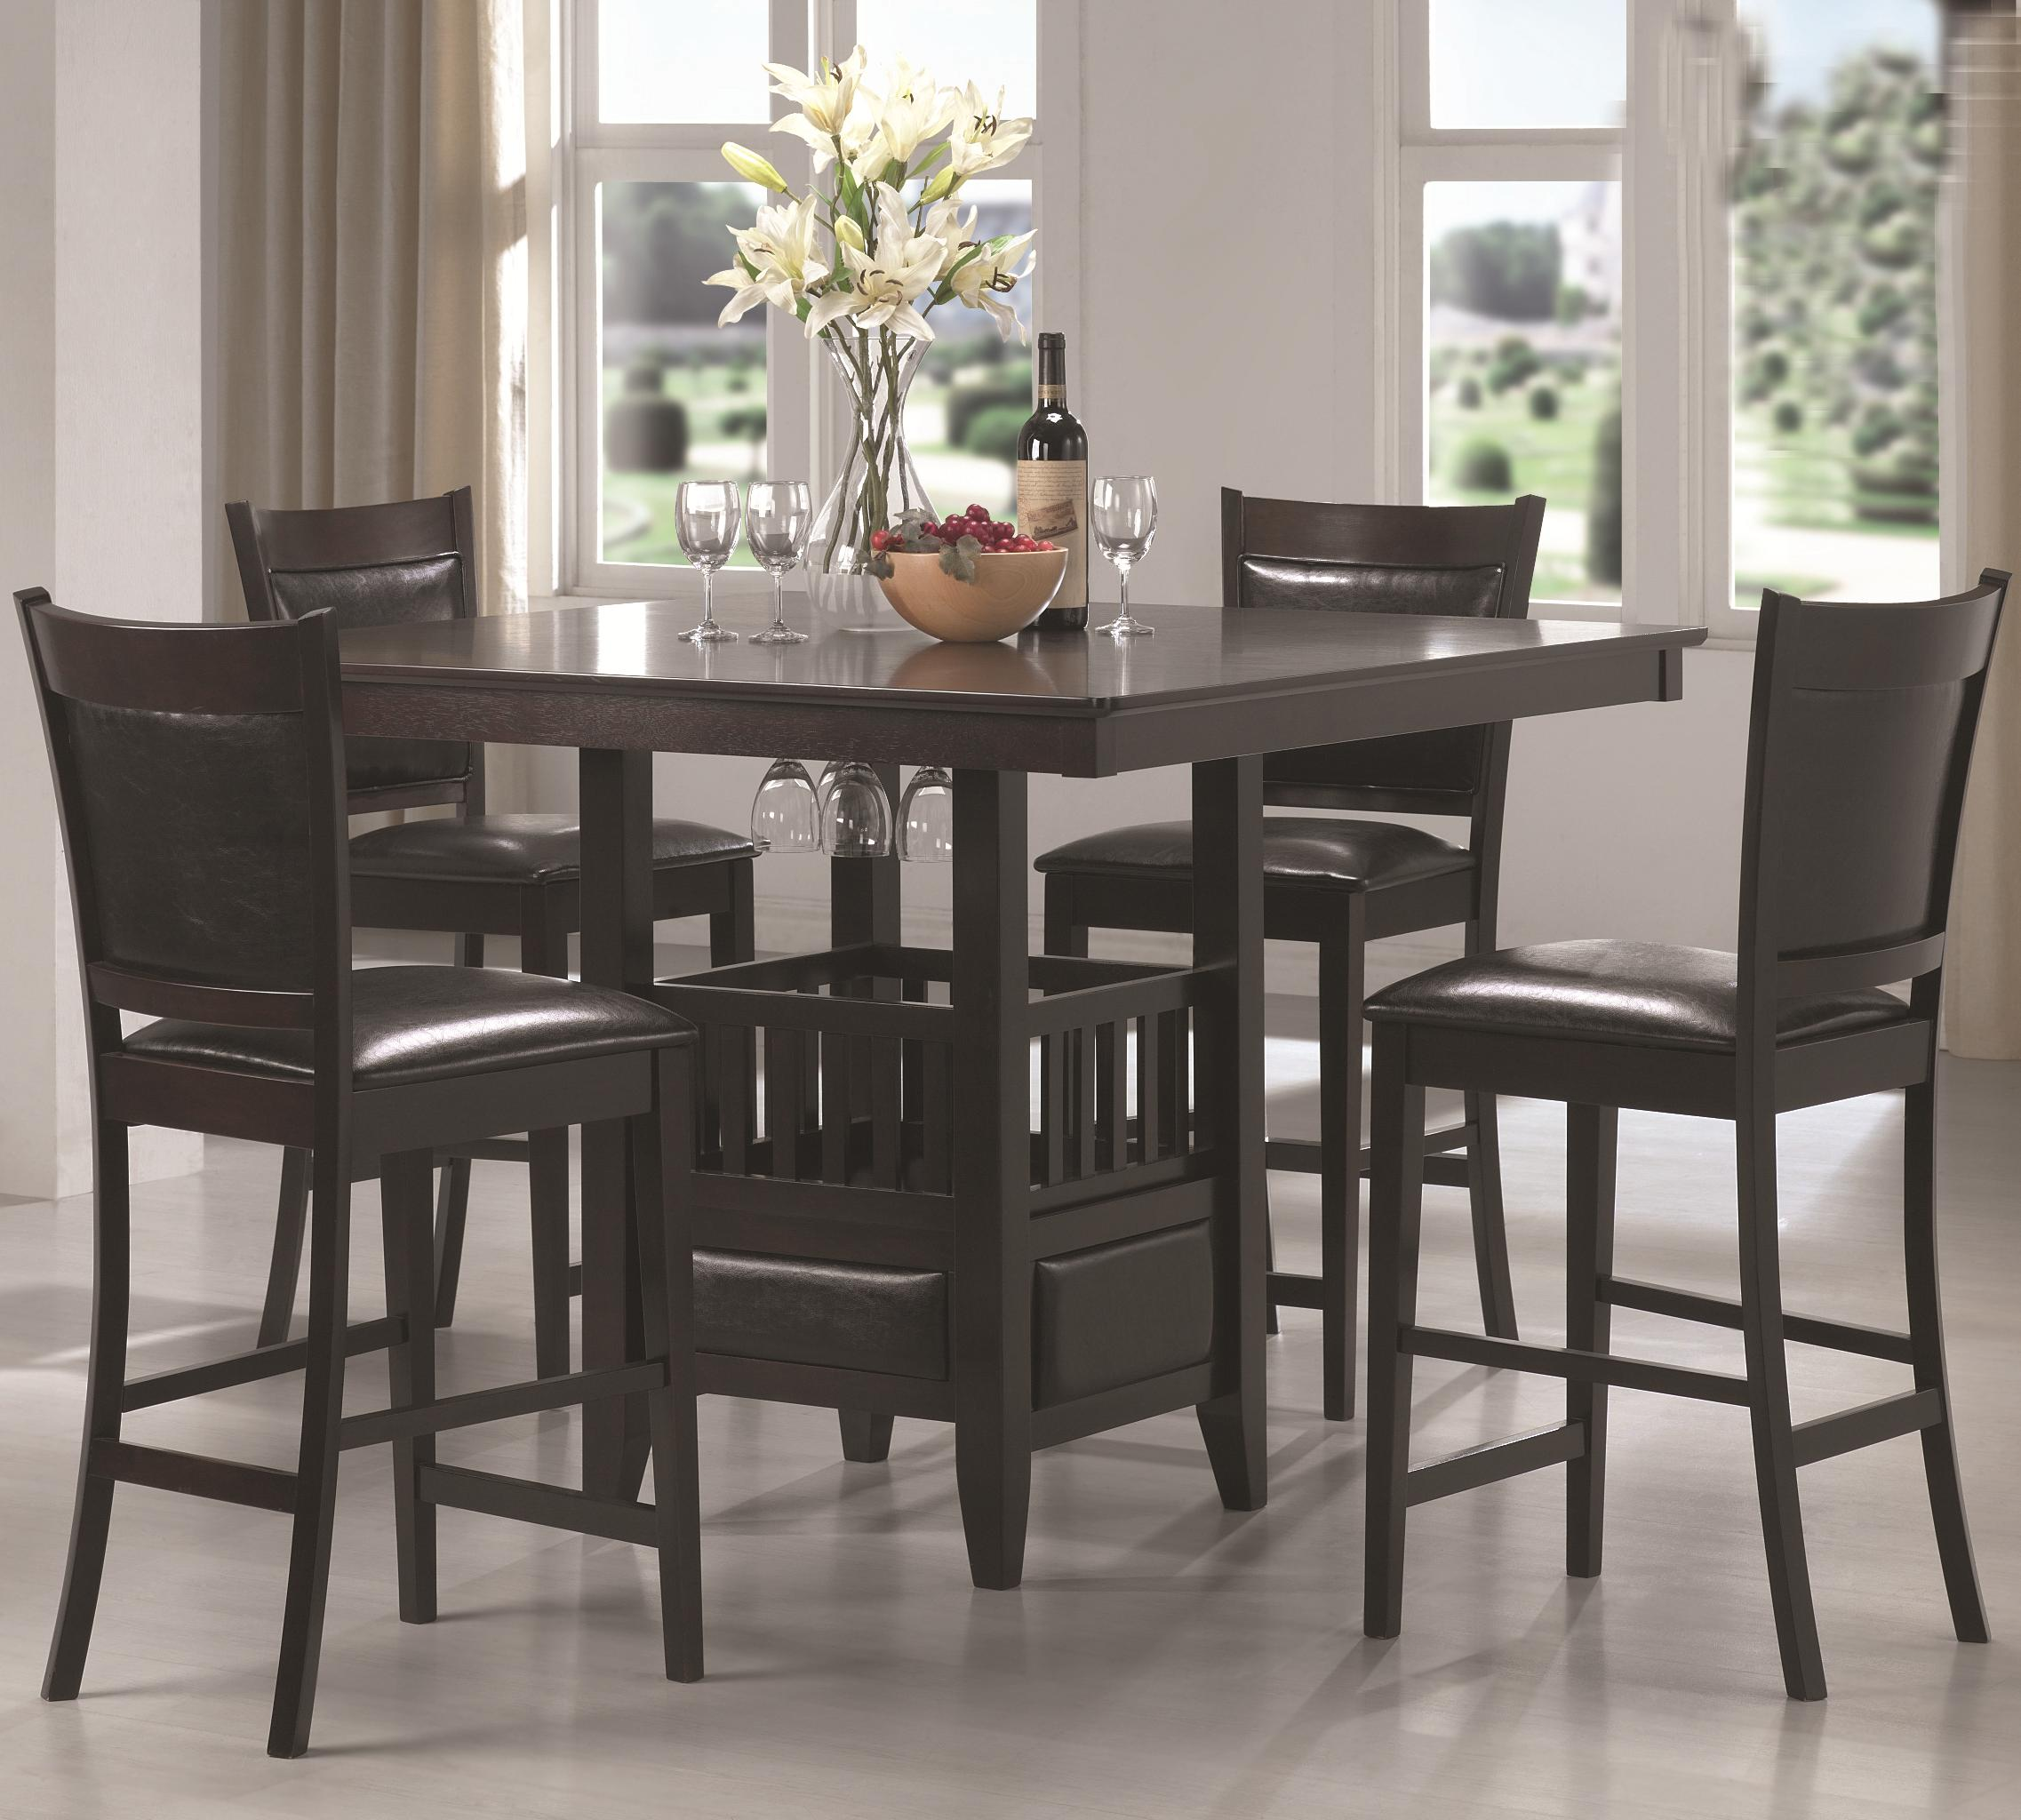 Coaster Jaden Counter Height Table U0026 Stool Set   Item Number: 100958+4x959